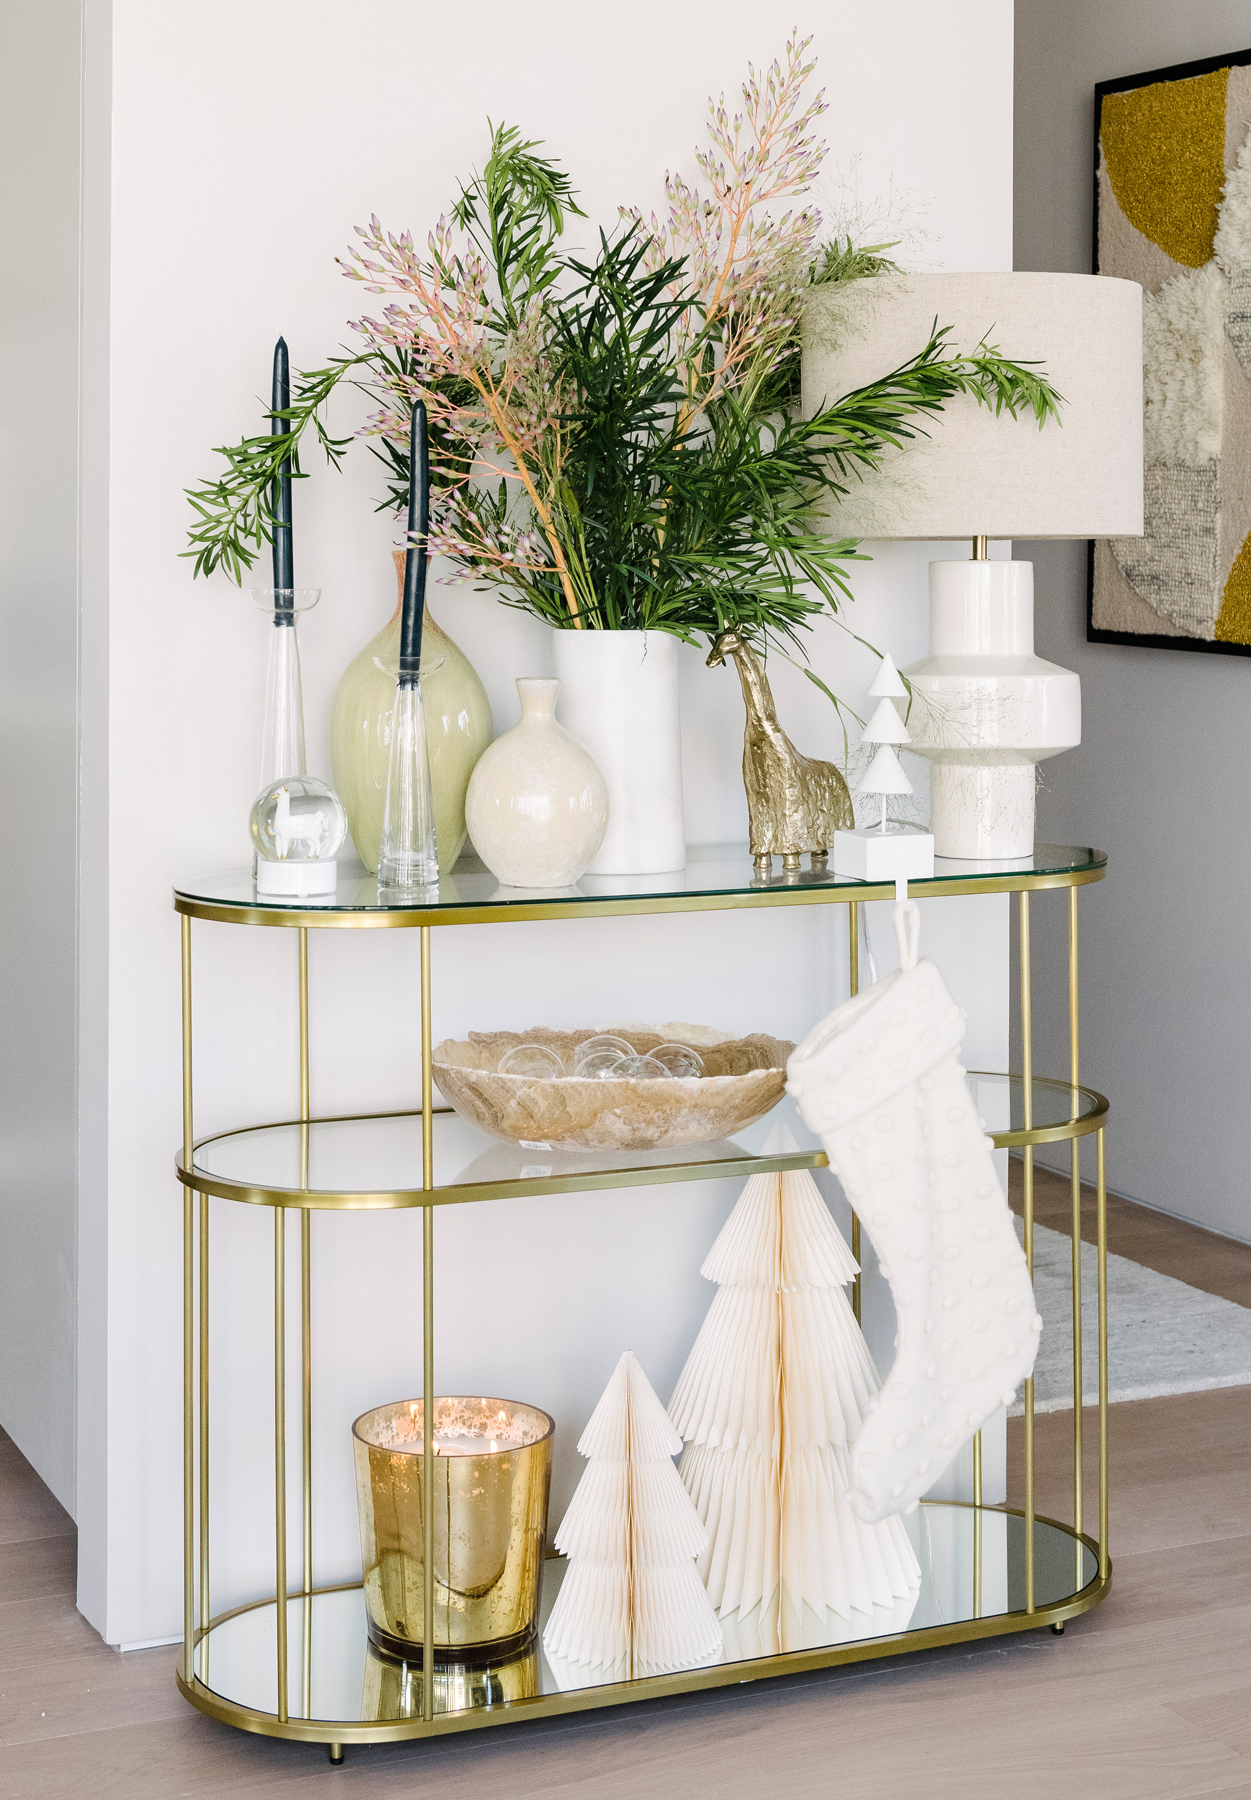 West Elm Holiday House decorating trends, ideas - Unexpected locations